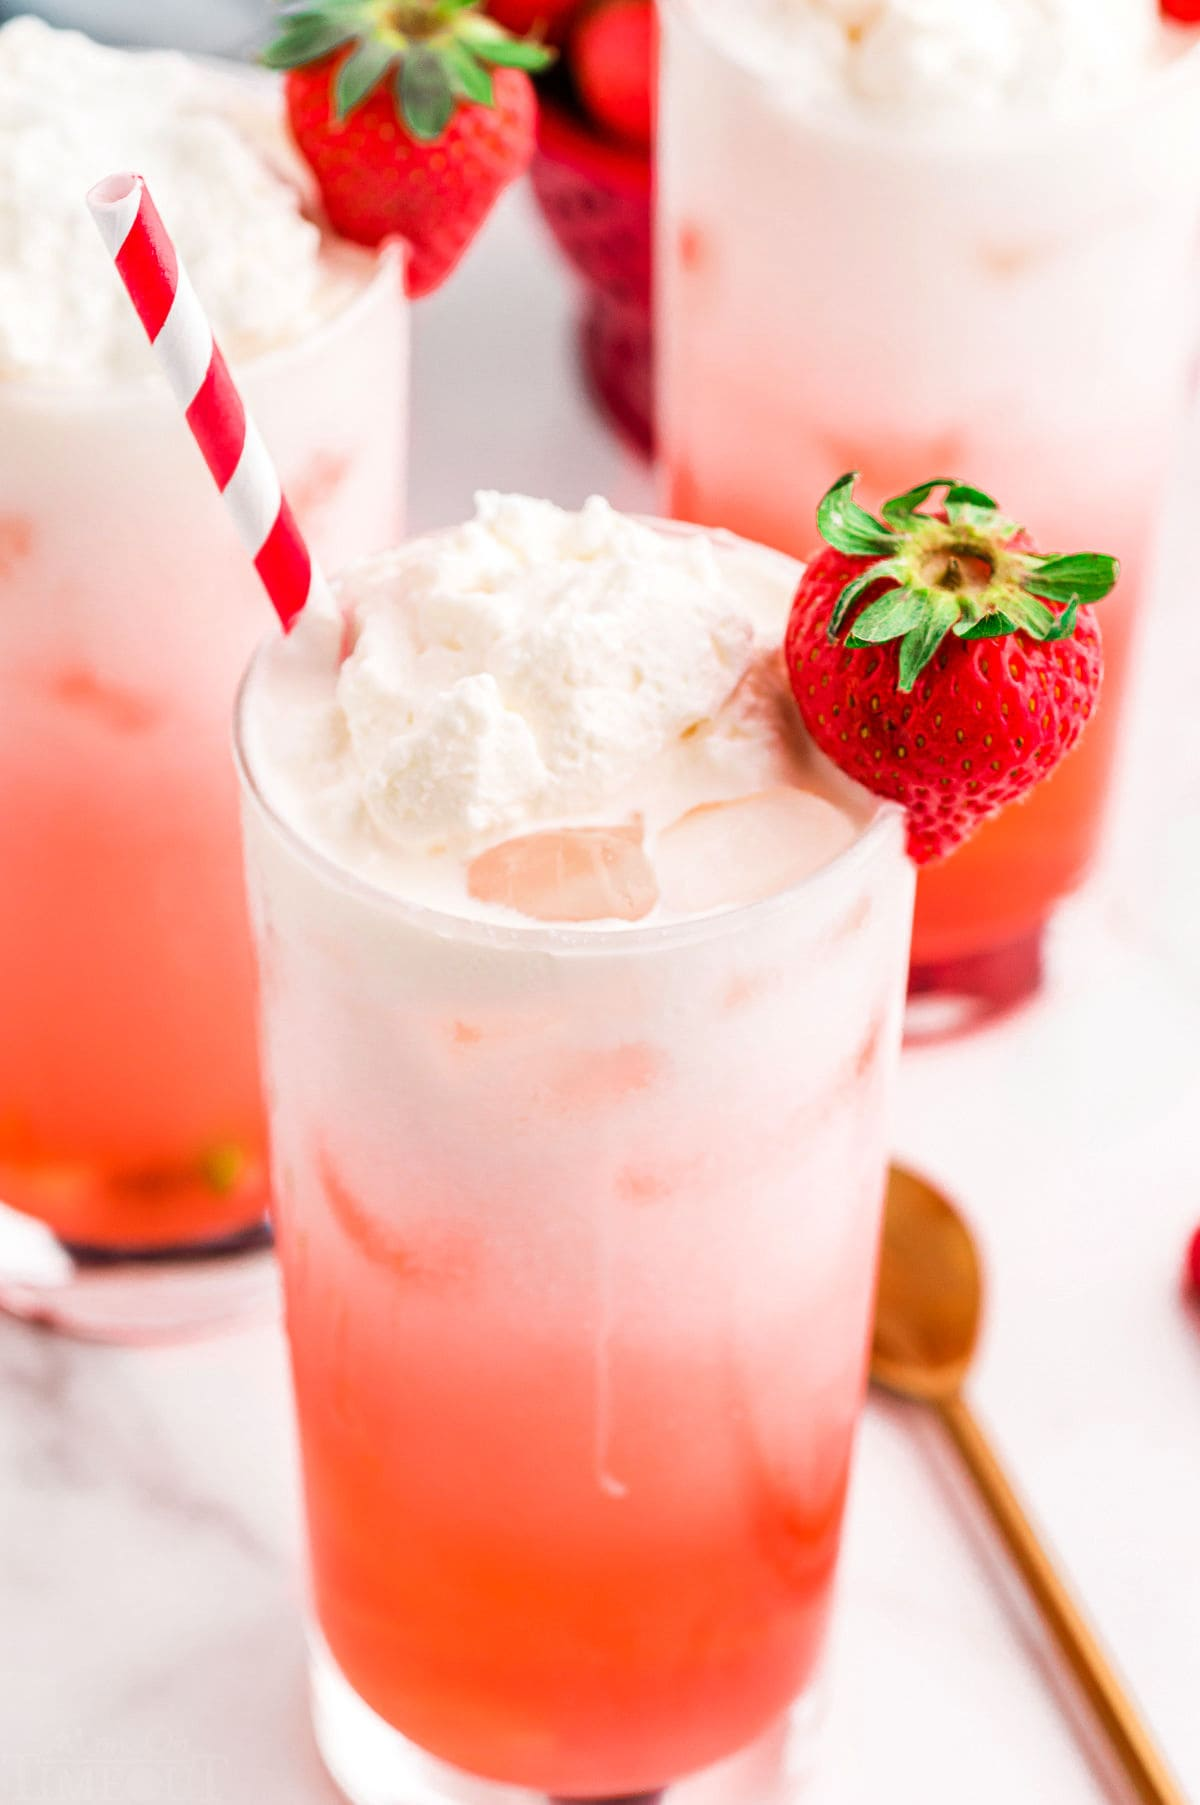 top down look at filled glass with italian soda flavored with strawberry syrup. red and white striped straw in the glass.